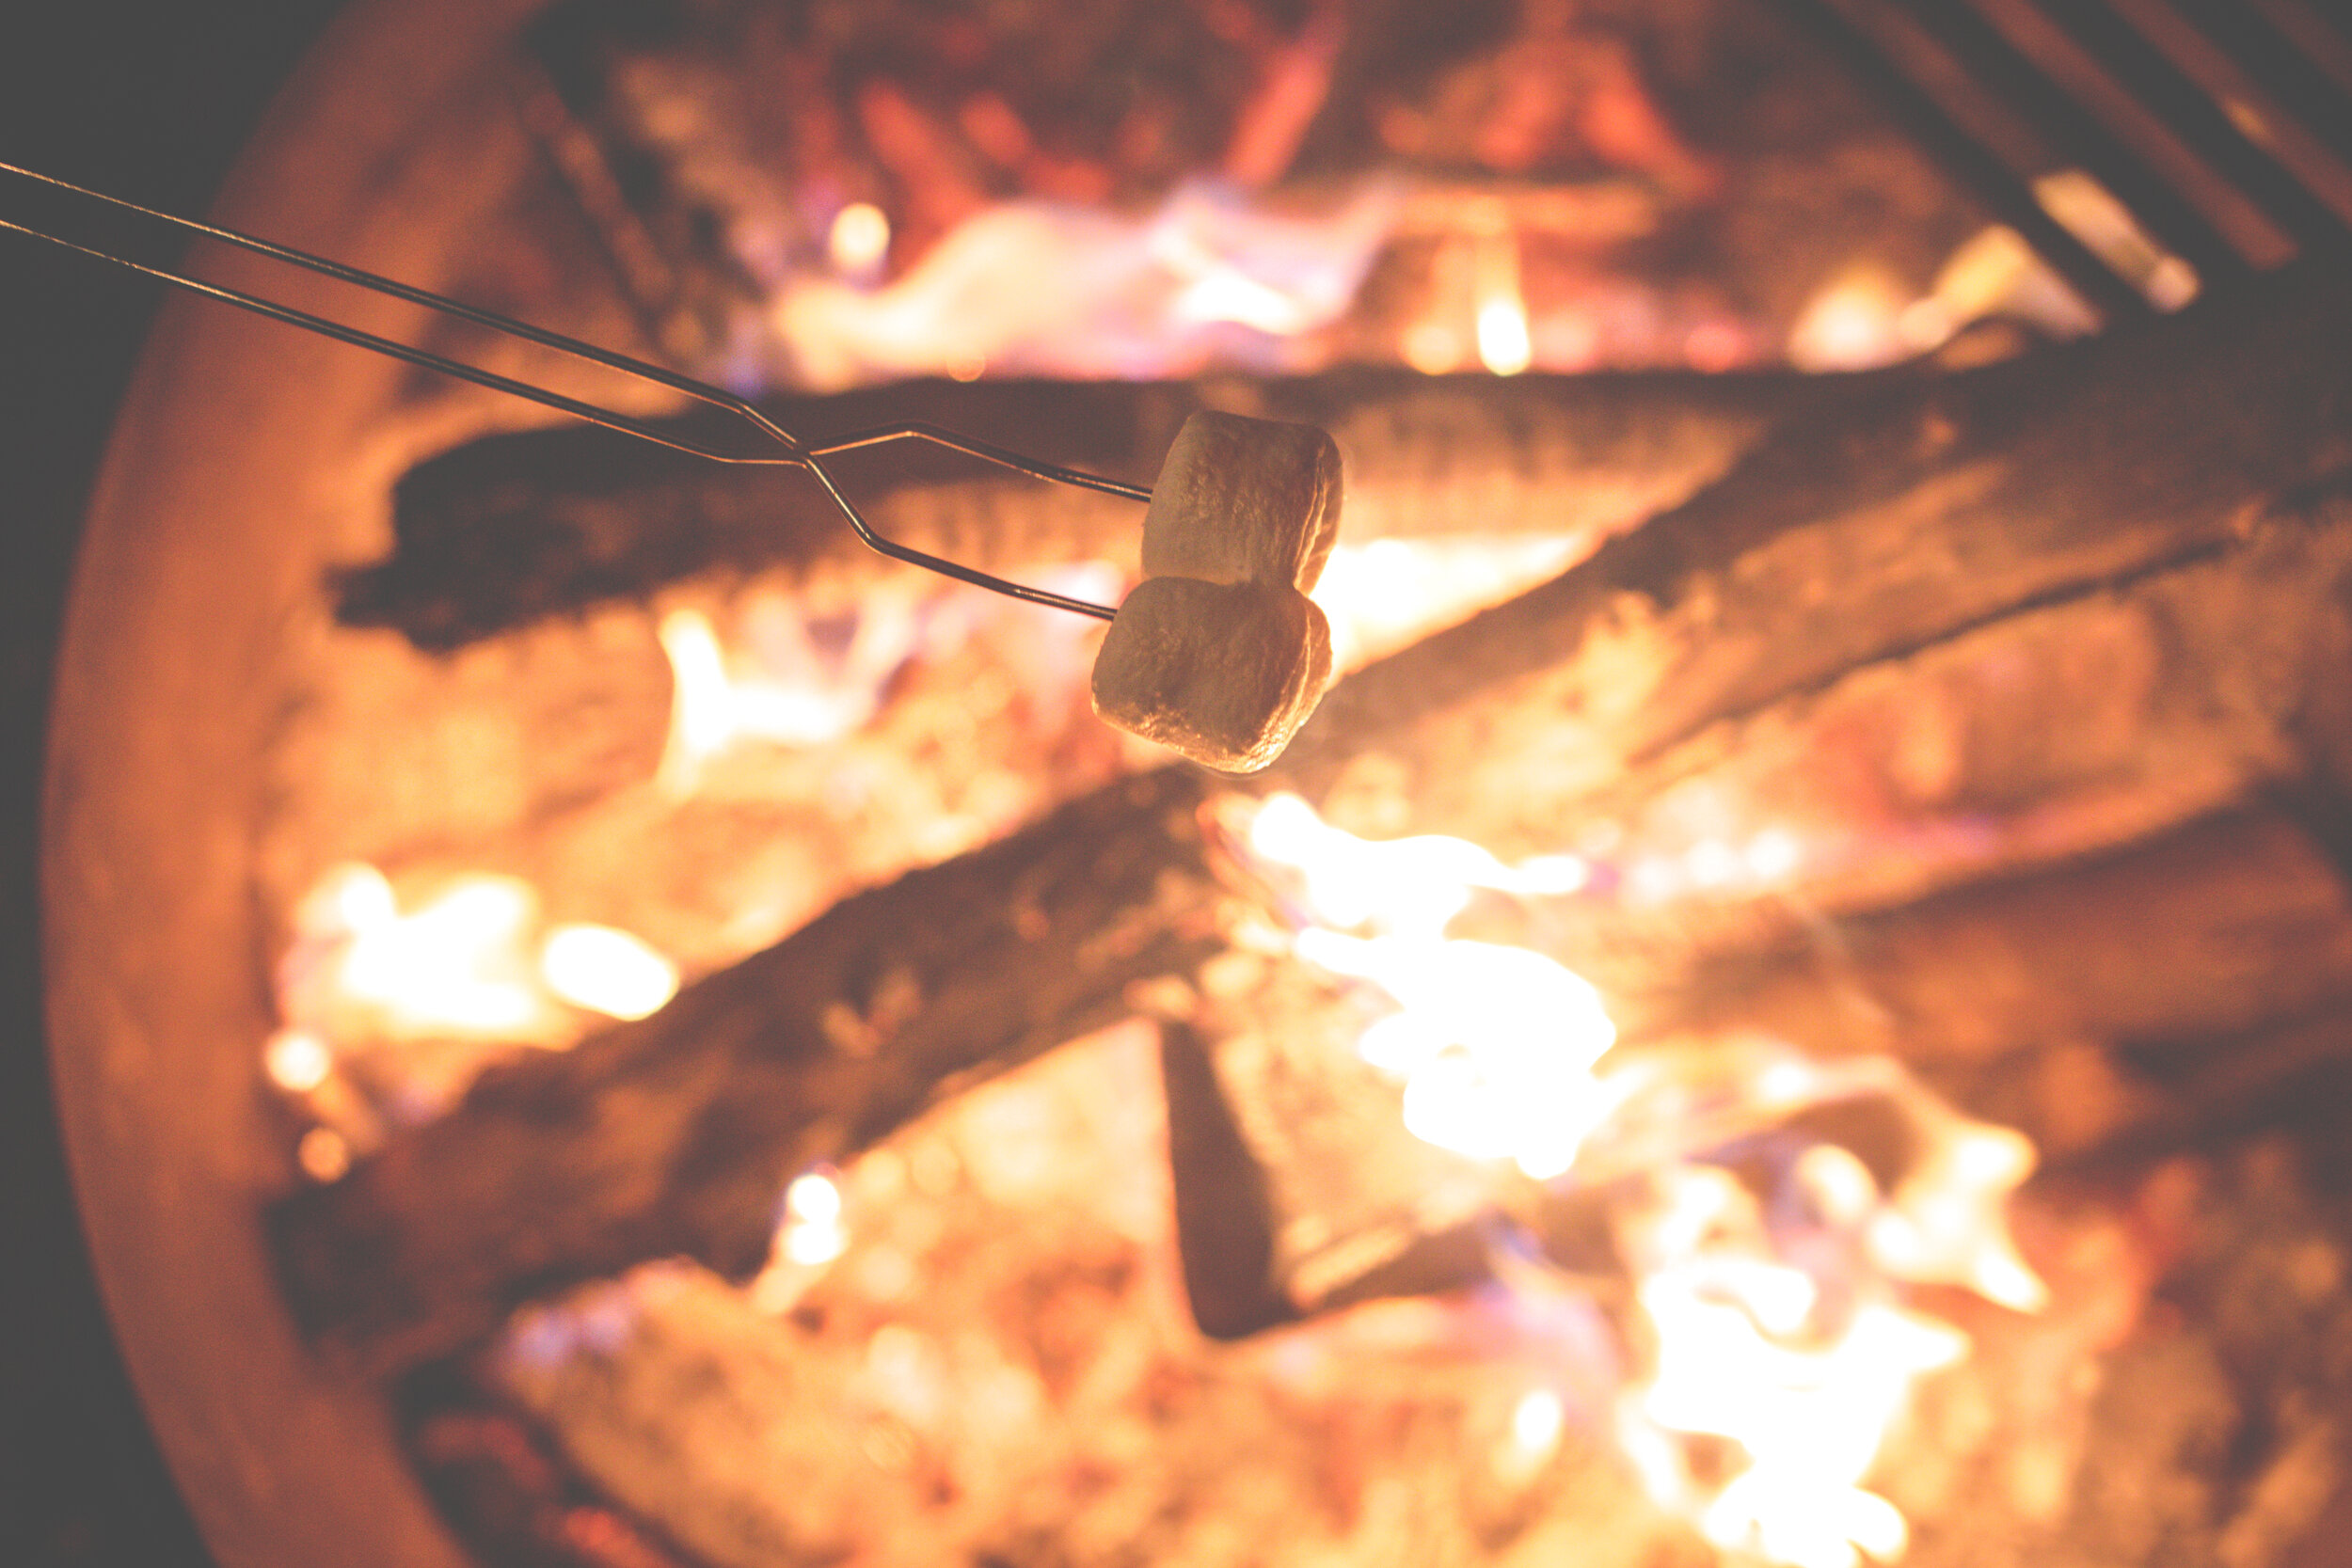 Family Campfire!  Join us for a campfire, complete with roasting hot dogs and s'mores and lots of fun! We are meeting at the shelter next to the Fabyan Windmill on Rt 25. at 4 pm on Sunday, October 20.  Please sign up on Realm or on the sign up board at church.  If the weather is questionable - please check Realm and  www.congregationalchurch.org  for updated location information.